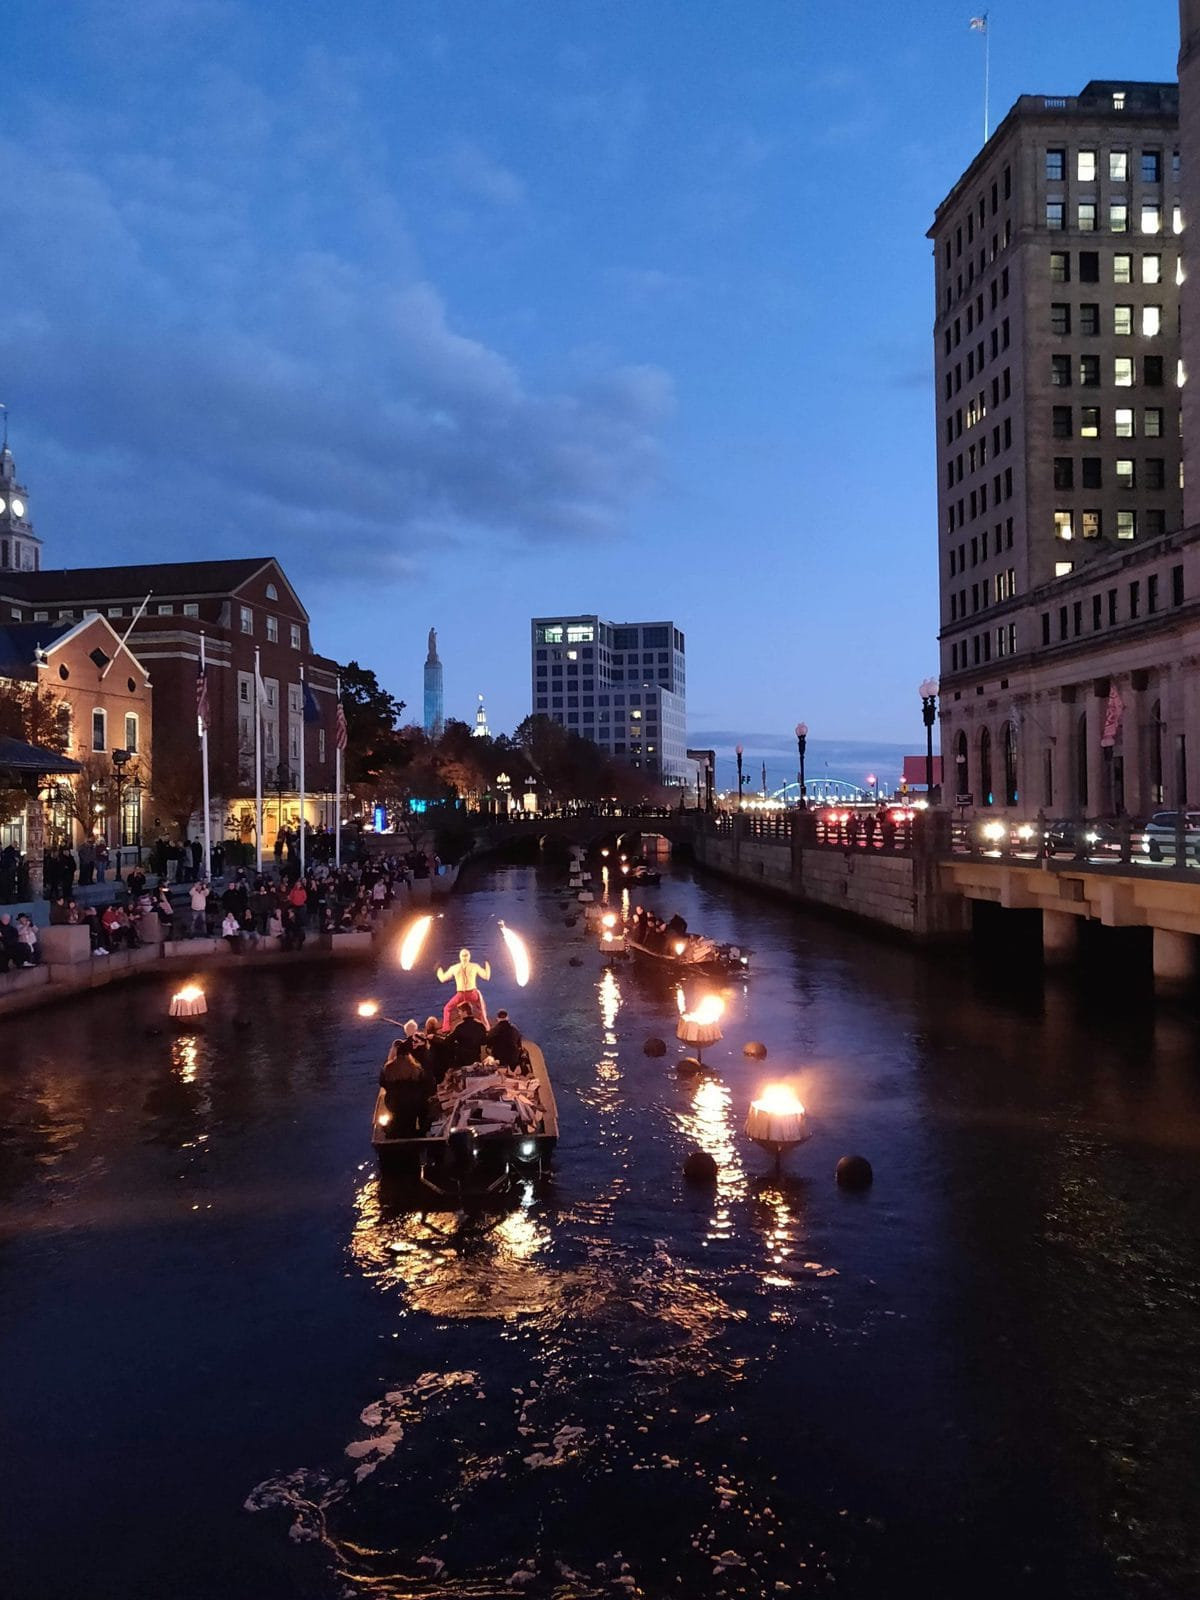 Waterfire in Providence, RI with a fire performer on a boat